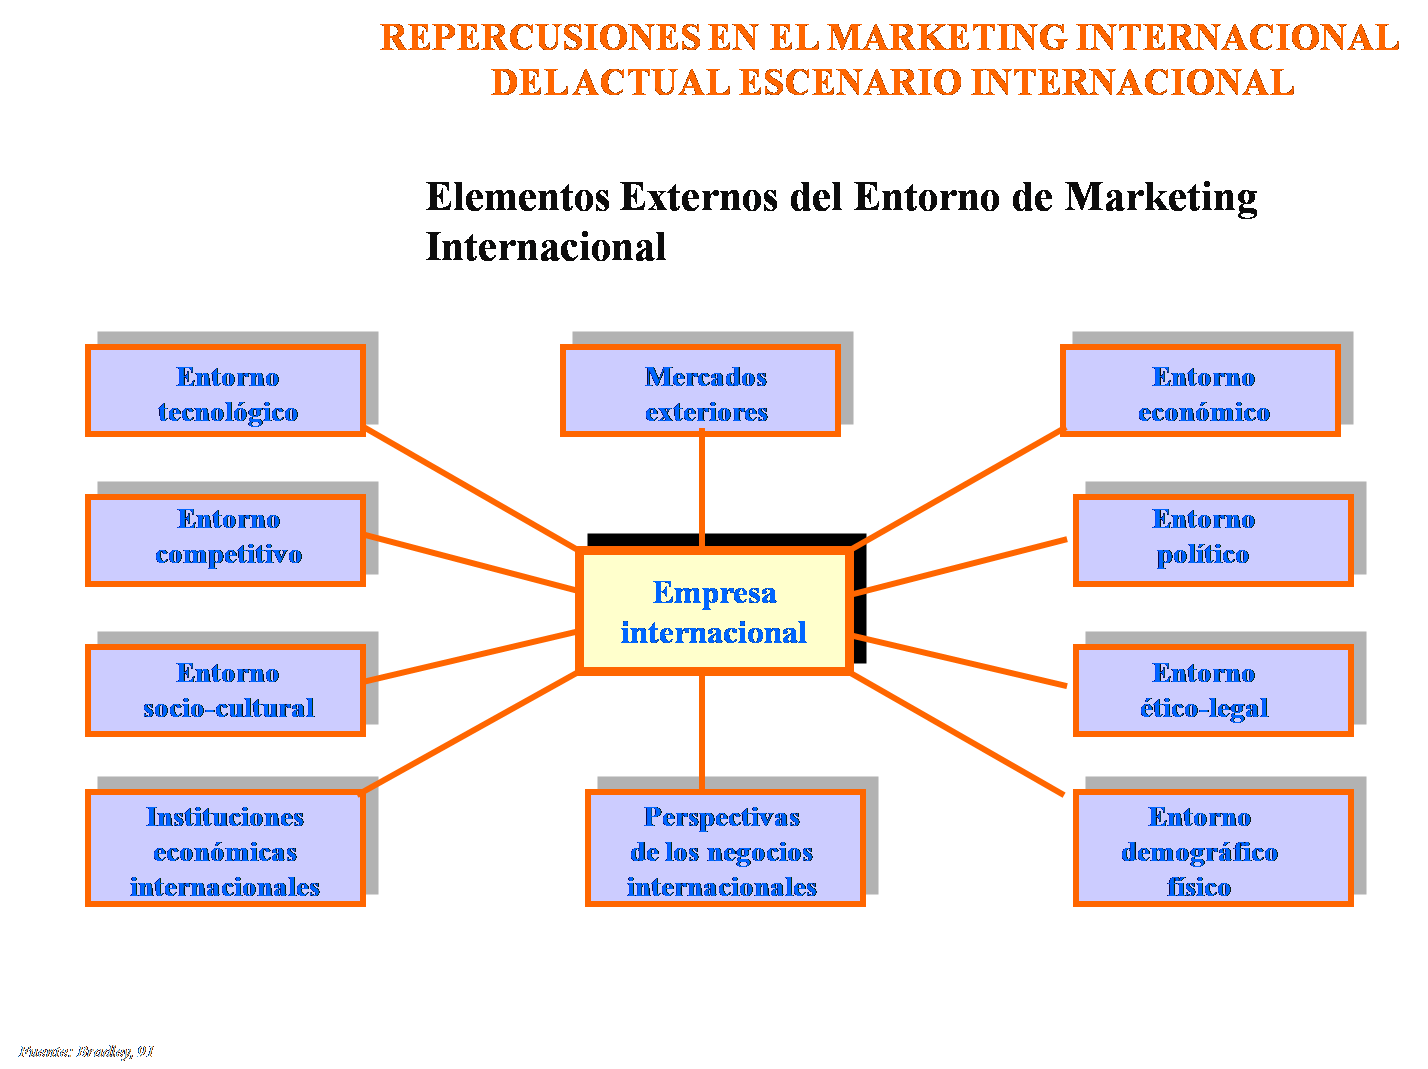 Libro Marketing Internacional Descargar Gratis Pdf @tataya.com.mx